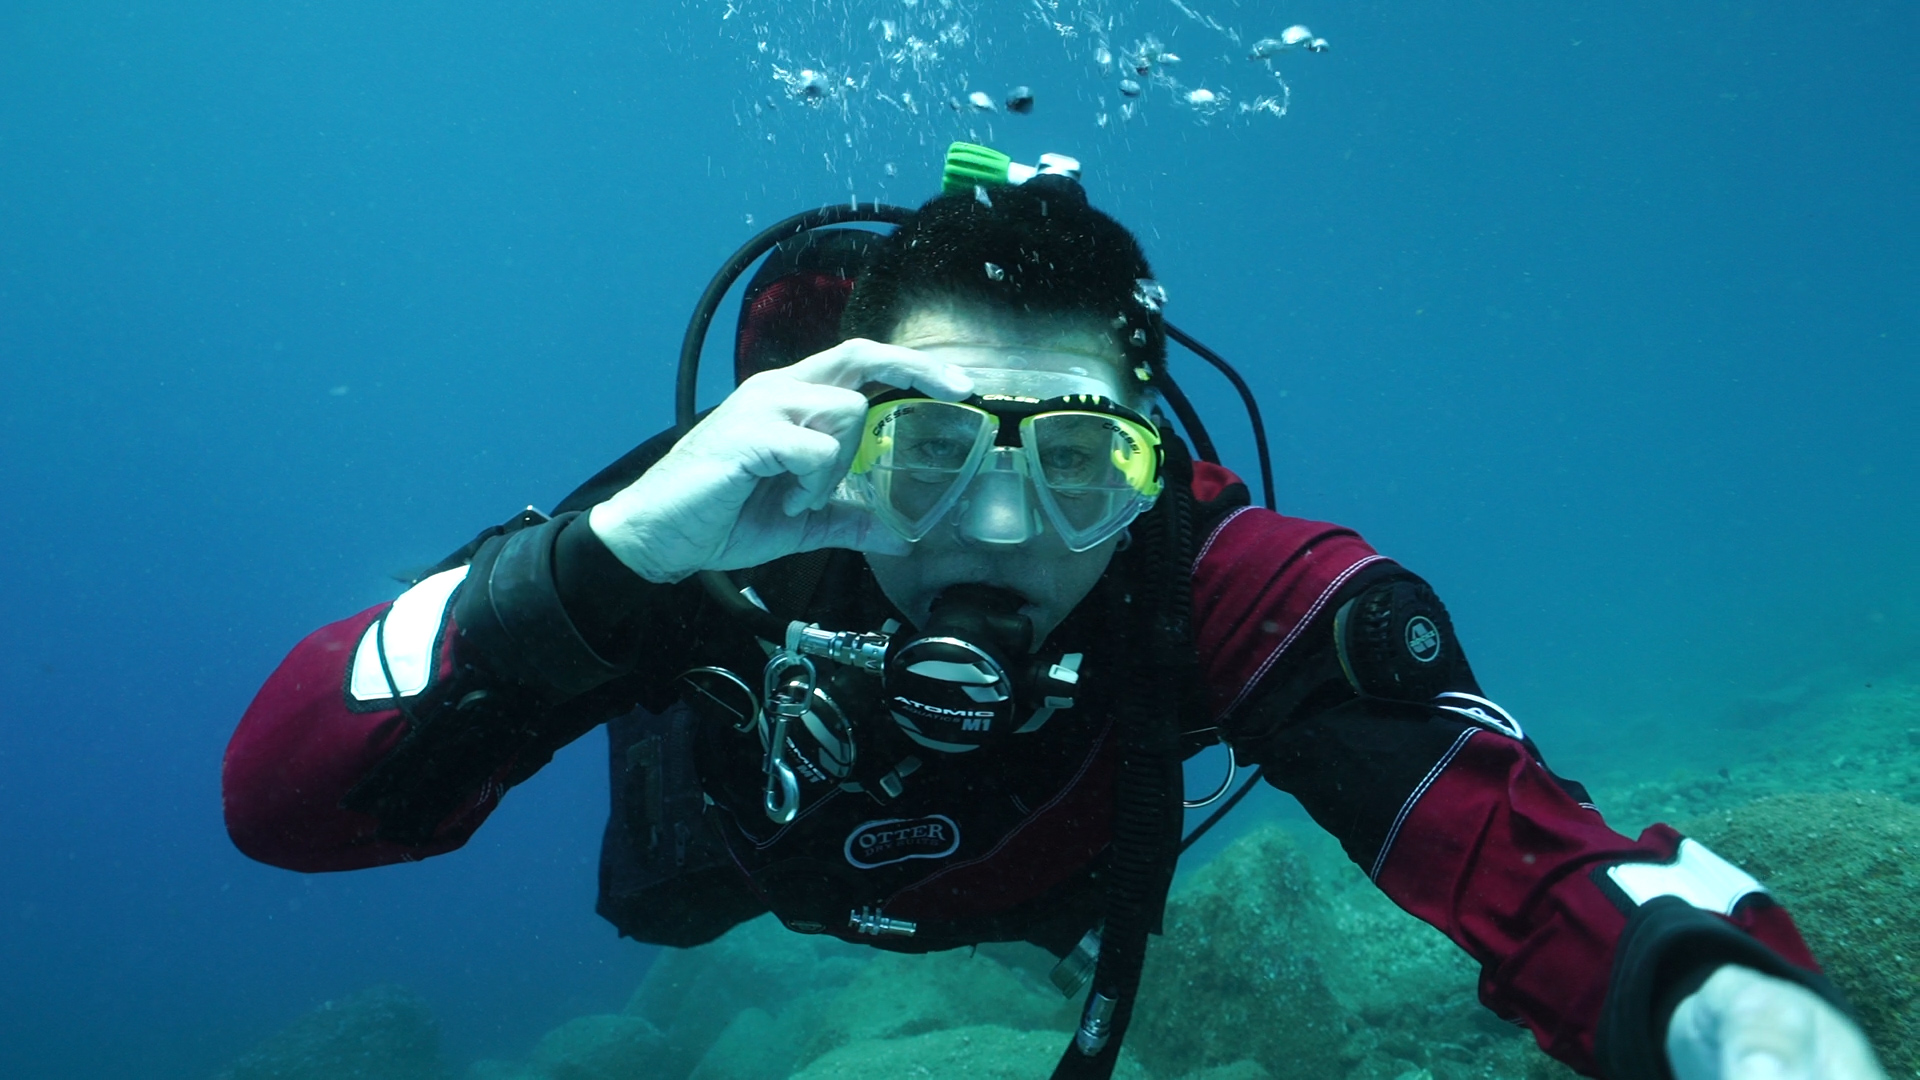 Scuba diver removing regulator